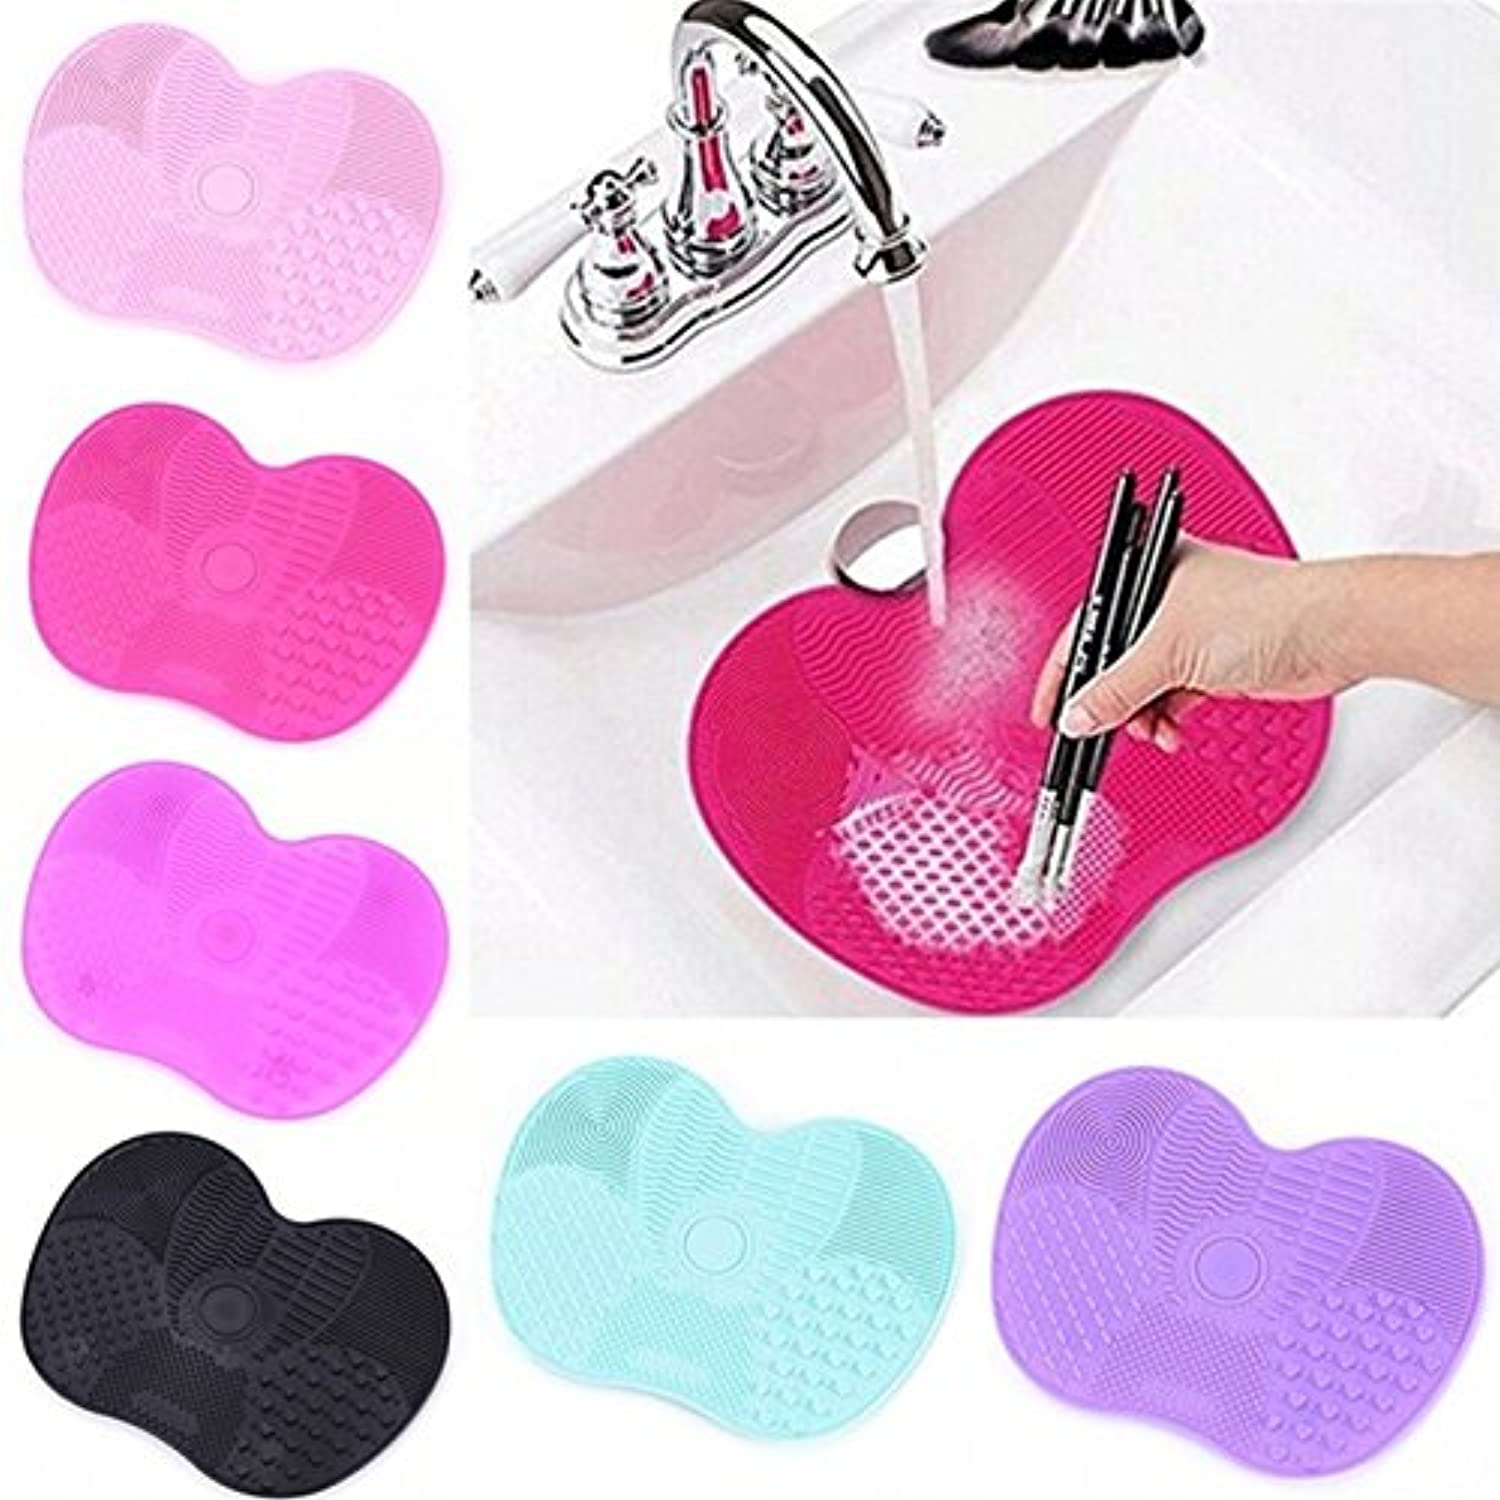 Makeup Brush cleaner Silicone Mat Make Up Washing Brushes Cosmetic Gel Board Cleaning Pad Cleaner Scrubber Tools (Random color)